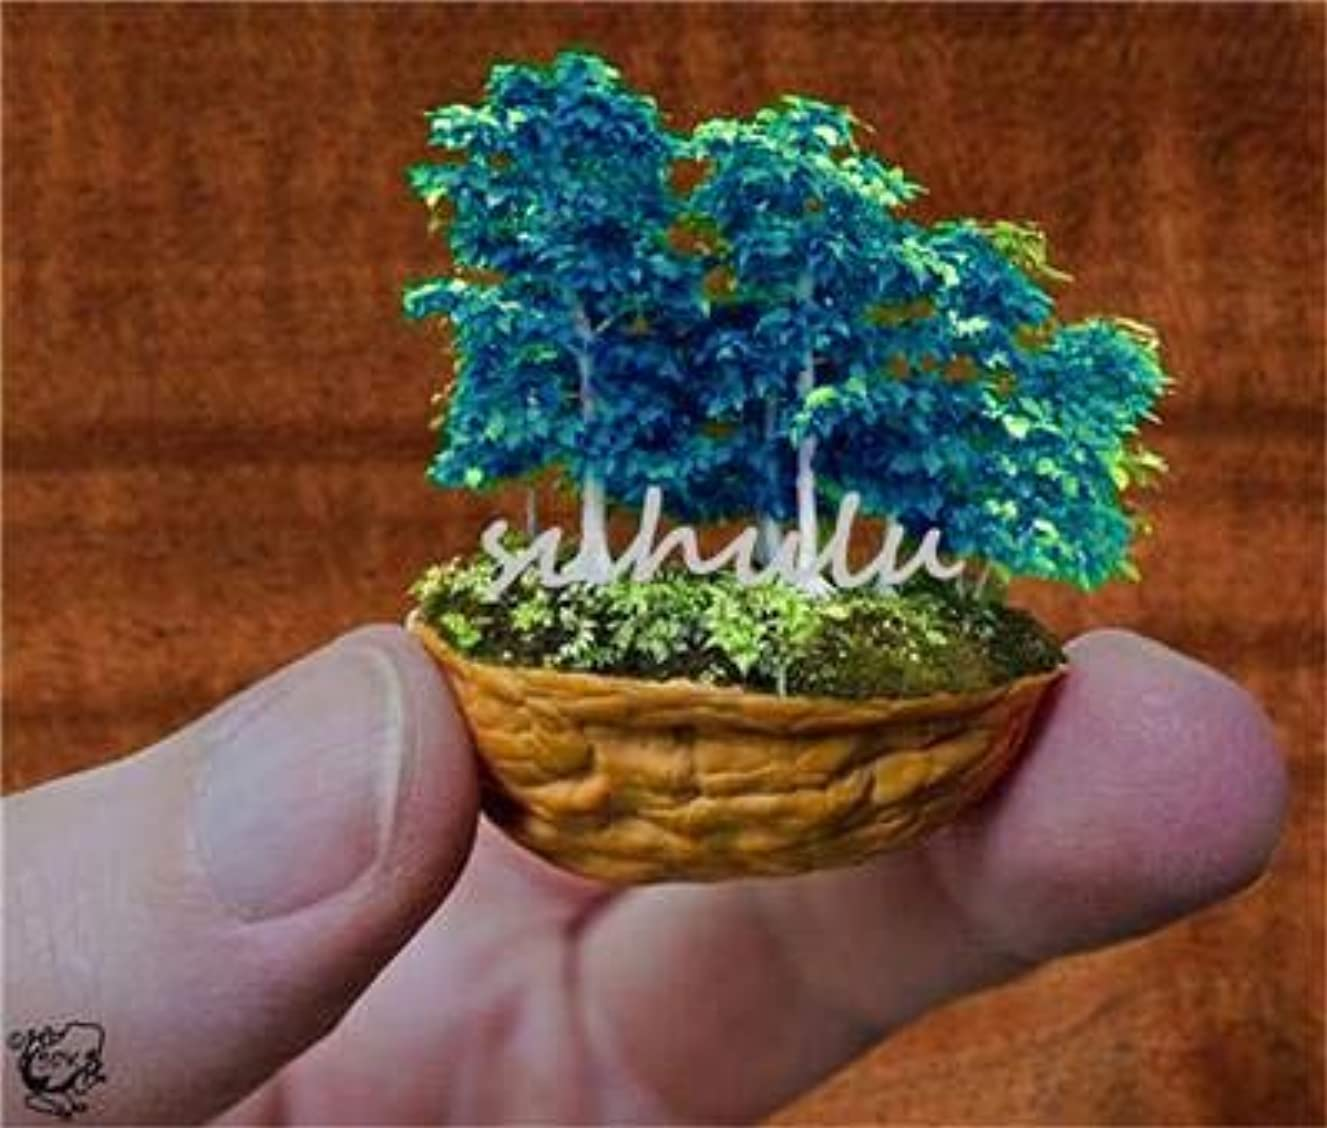 Rare Colorful Mini Seeds 50 Pcs/Bag Mixed Bonsai Tree s Pot Suit for DIY Home Garden Japanese So Cute Gift for Kids